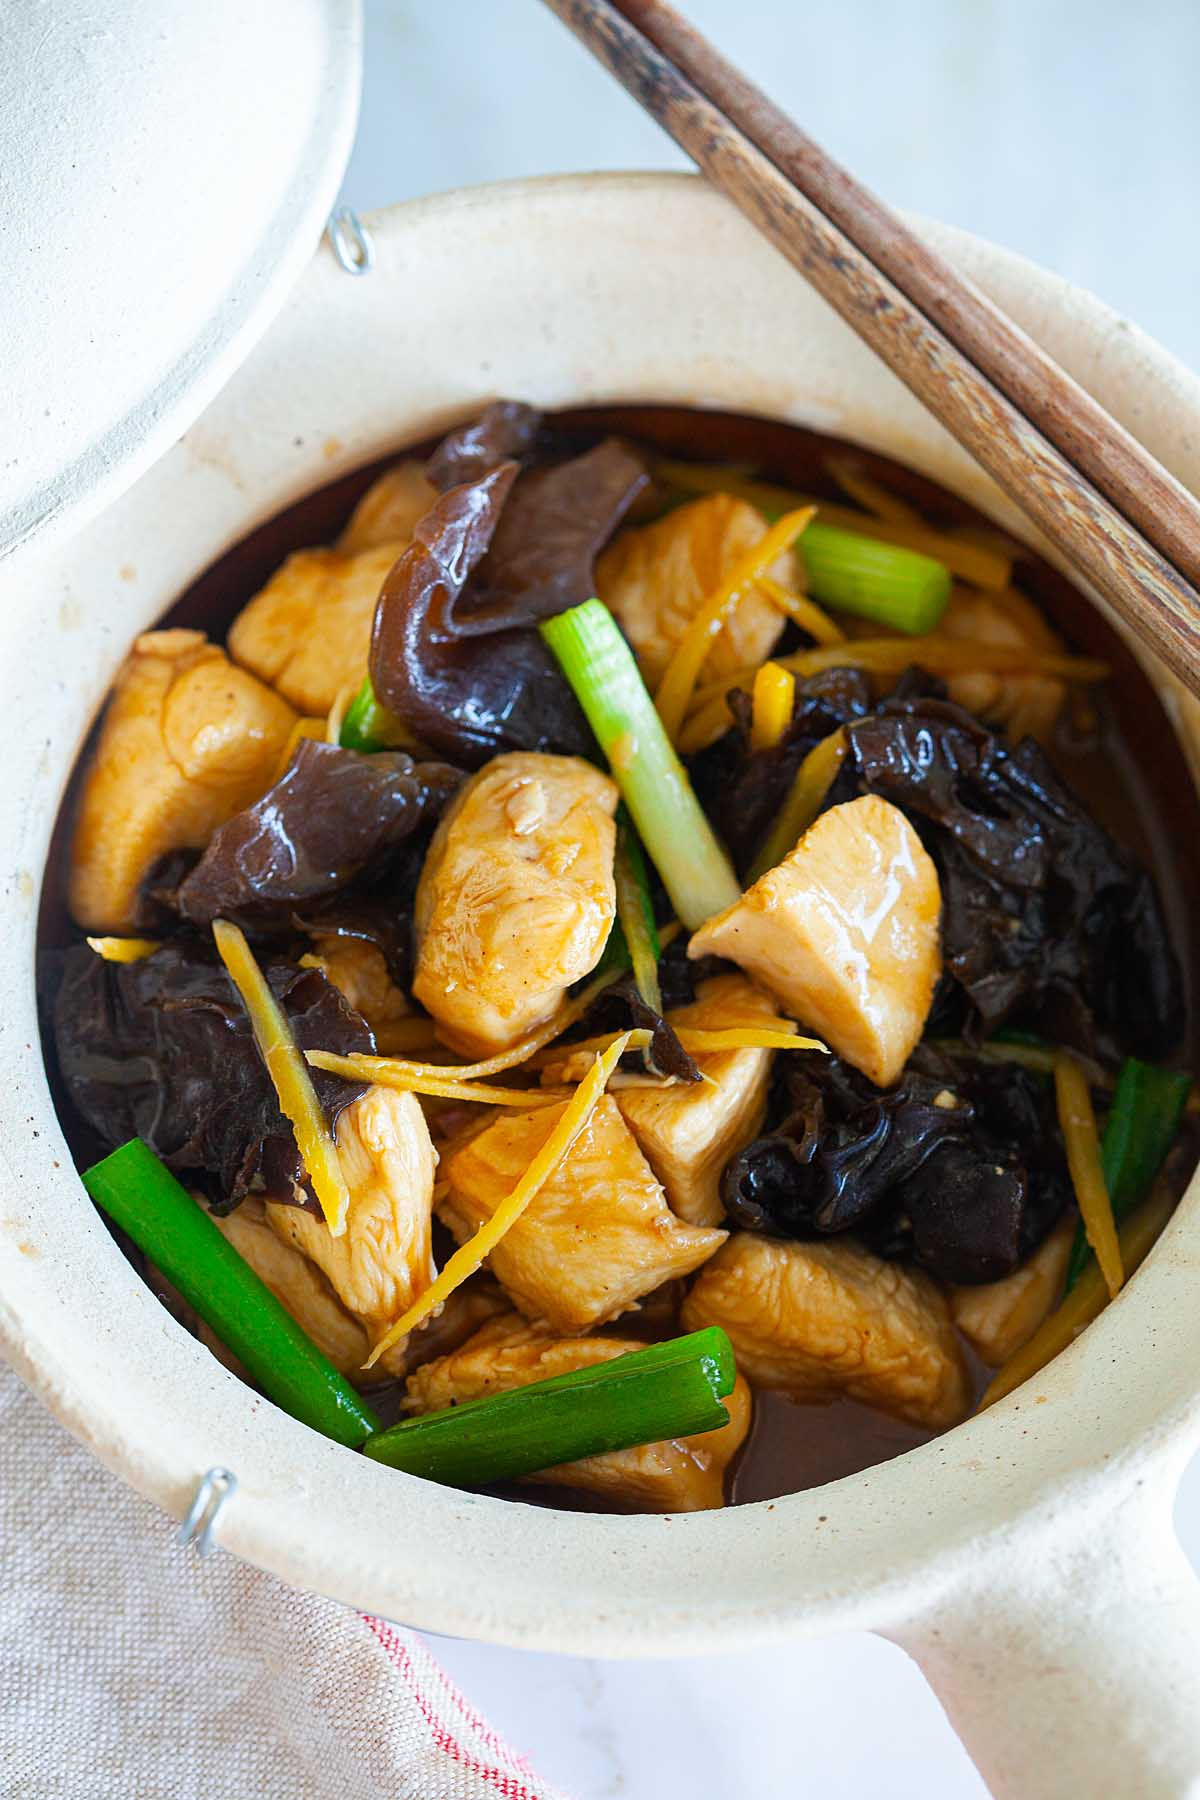 Chicken stew recipe with chicken, black fungus and ginger in brown sauce.